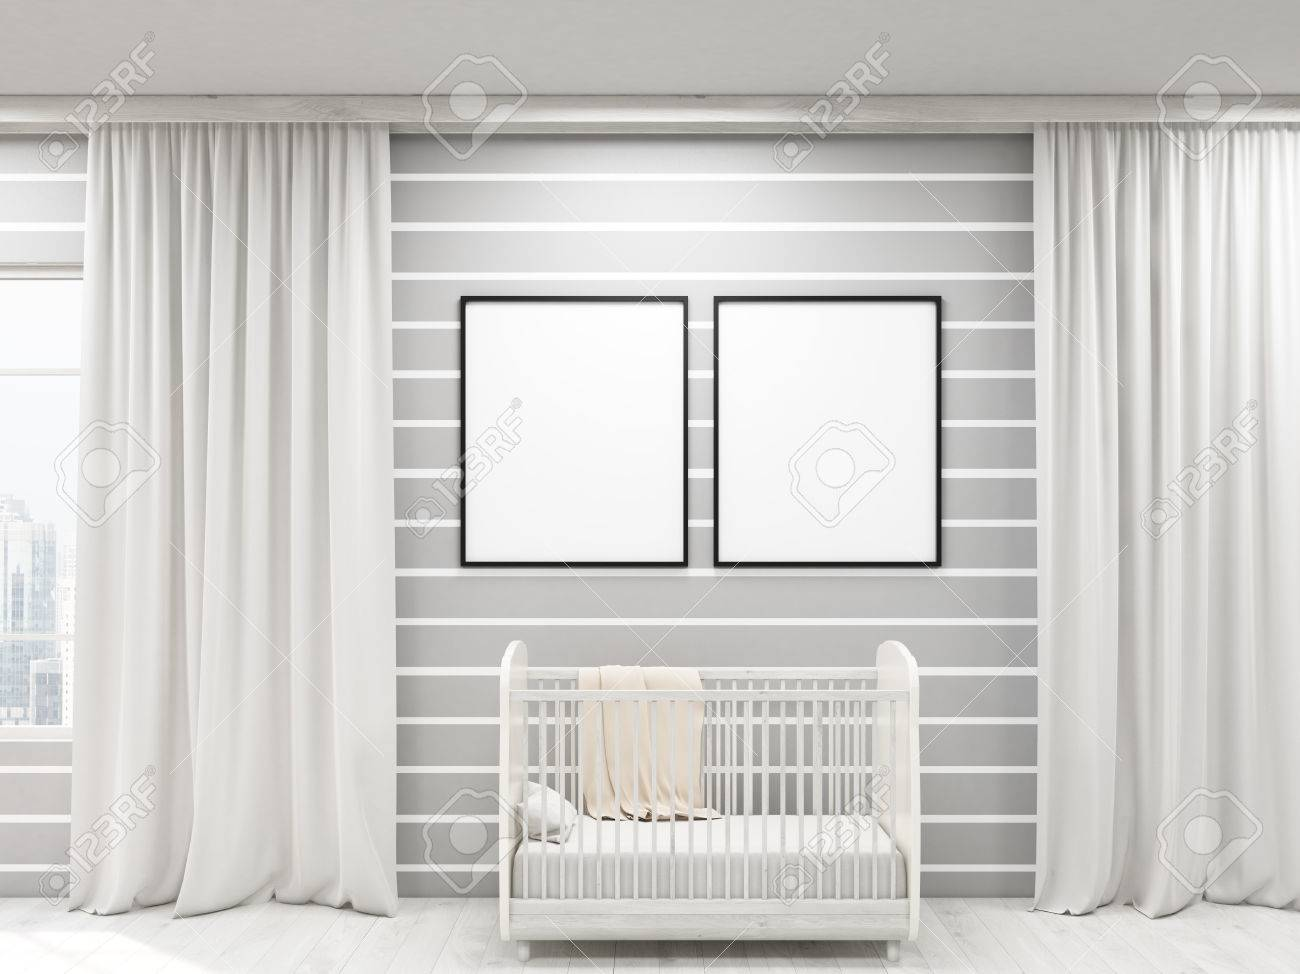 Mock ups of one bedroom two bedroom and three bedroom apartments - Mock Up Nursery With Two Posters Bed And Large Windows Frames Concept Of Cozy Apartment